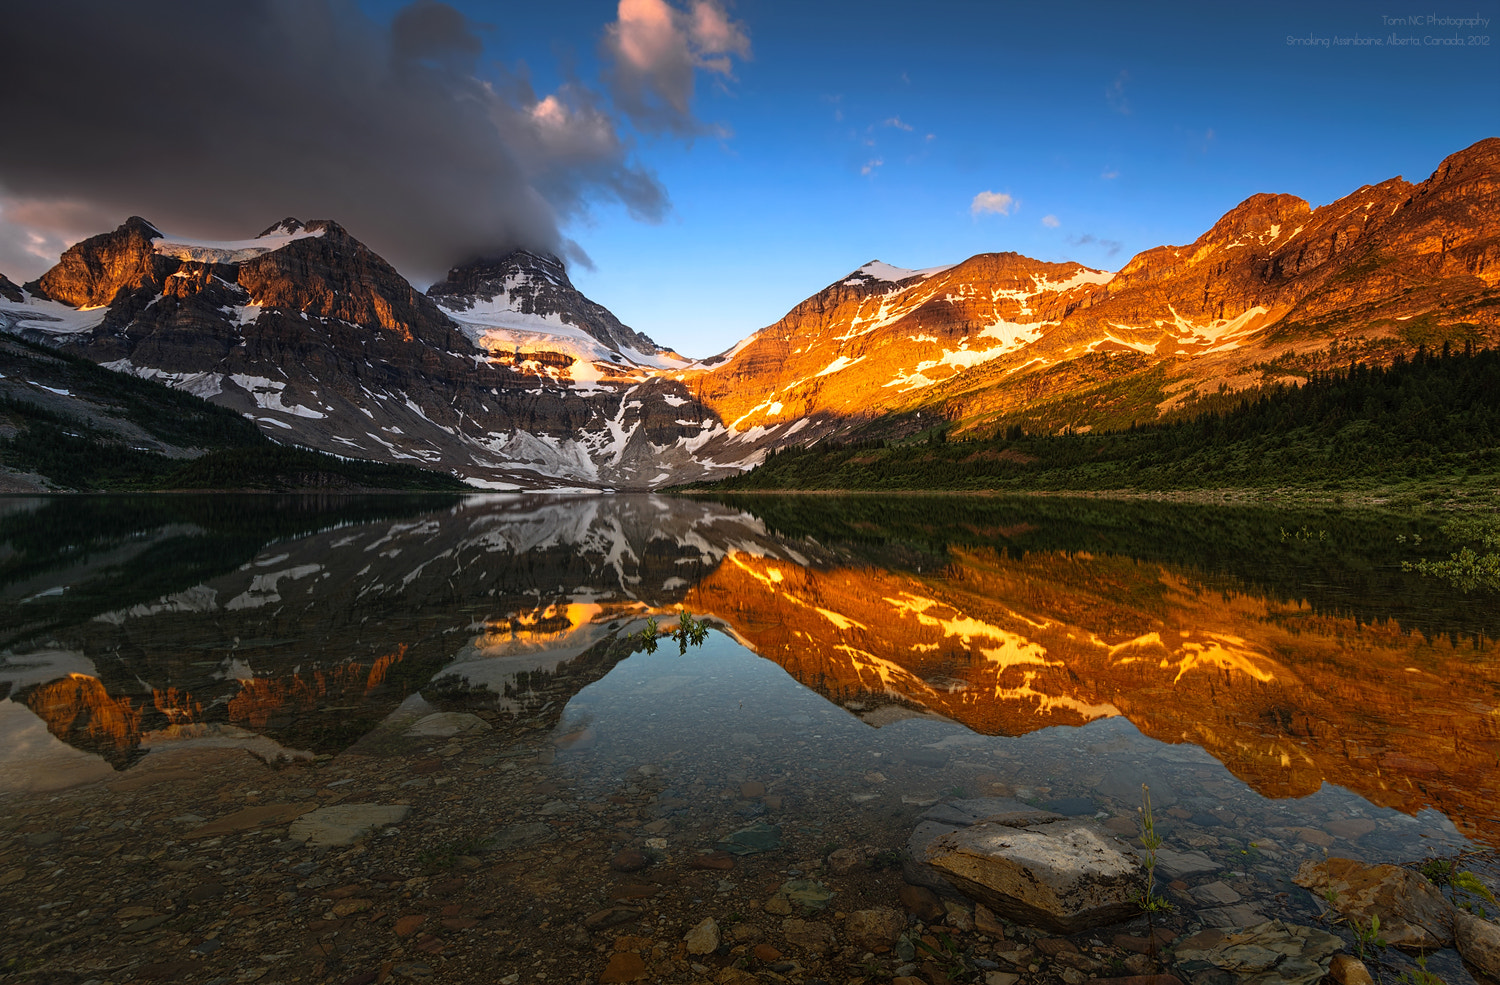 Photograph Smoking Assiniboine by Noppawat Charoensinphon on 500px